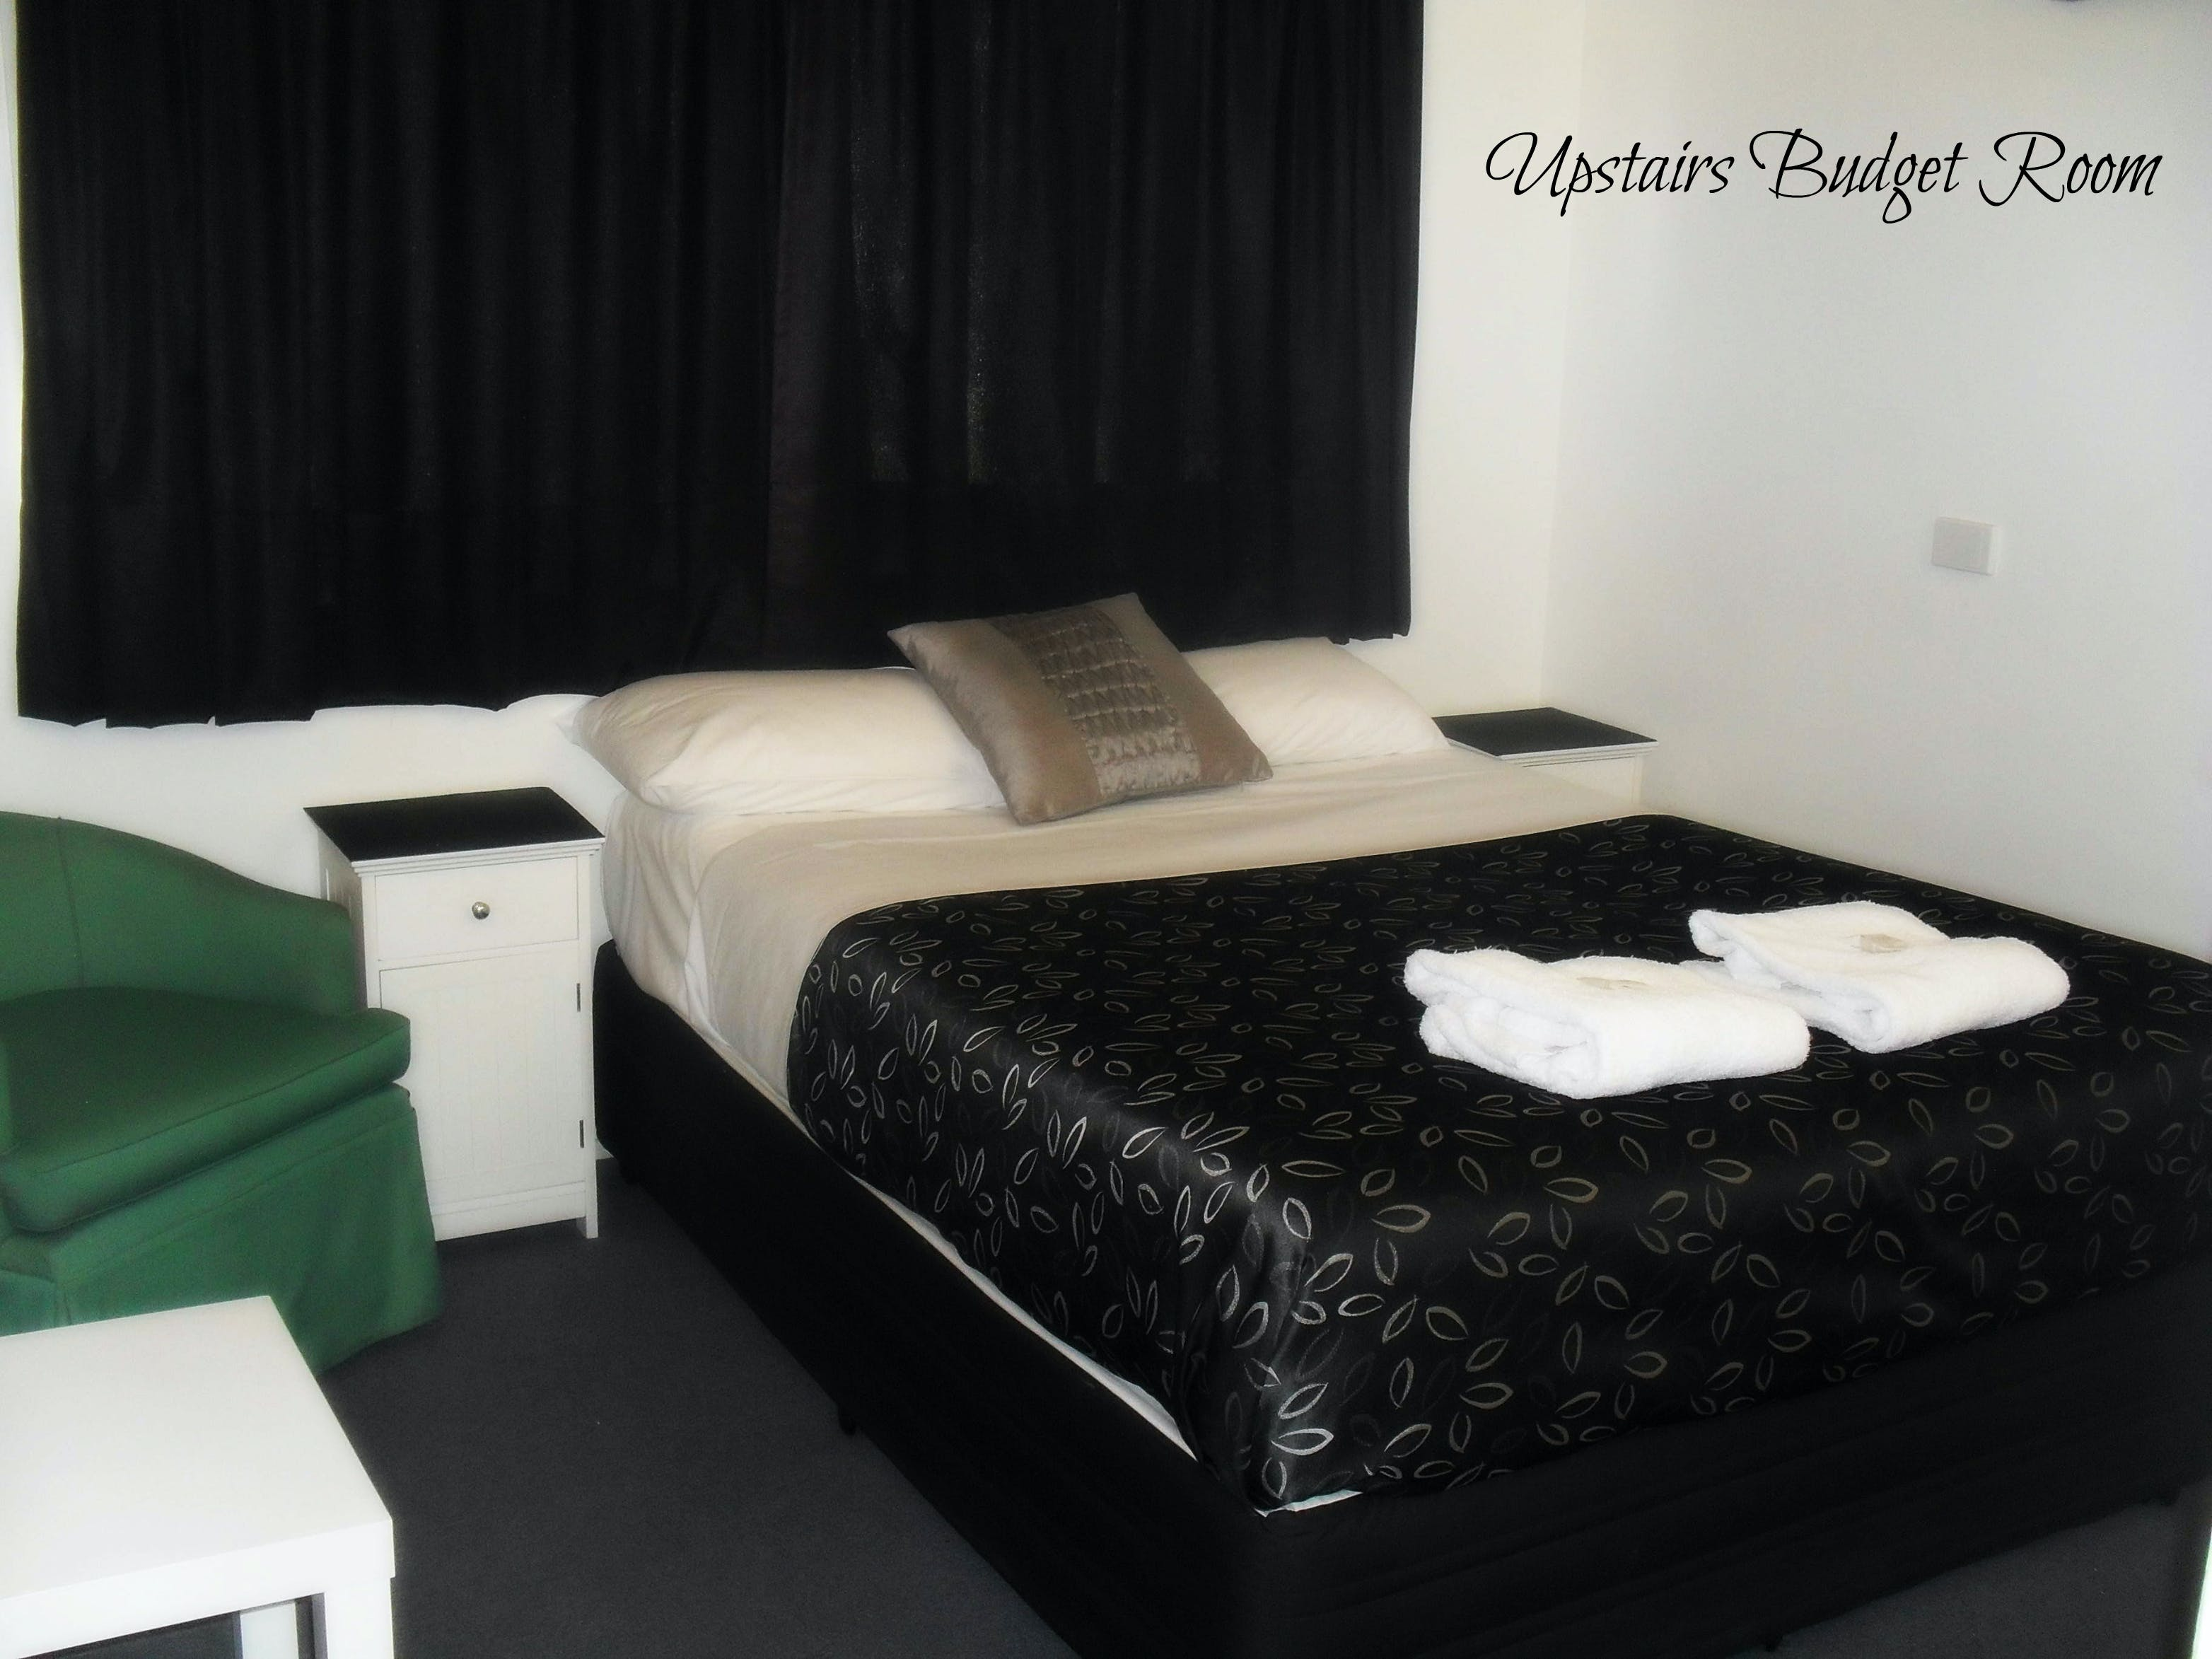 Upstairs Budget room with one double bed